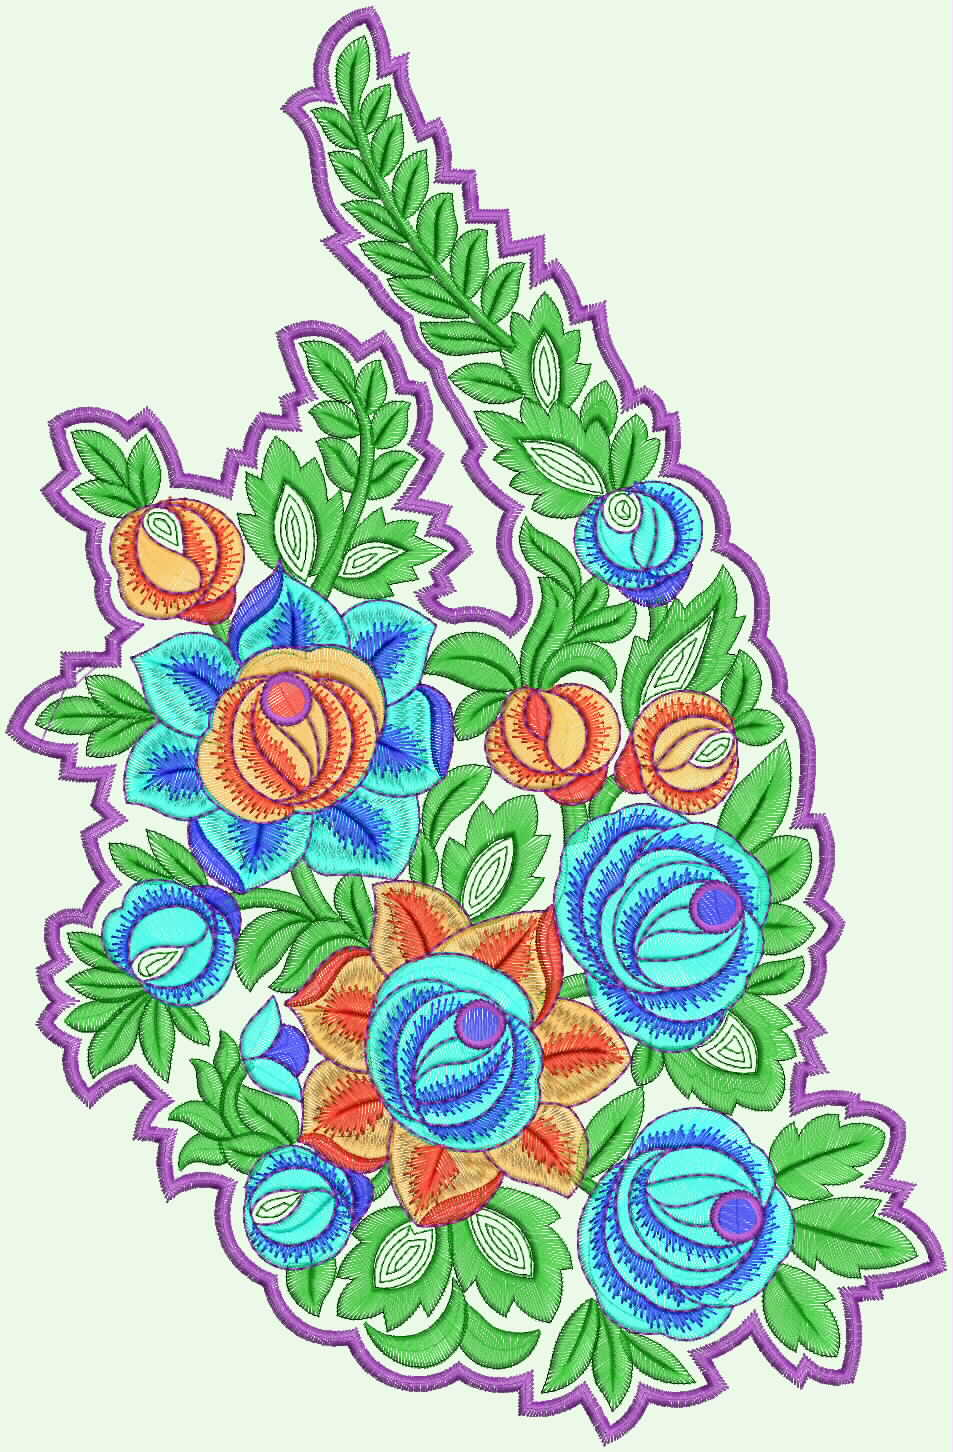 Embroidery designs free download makaroka